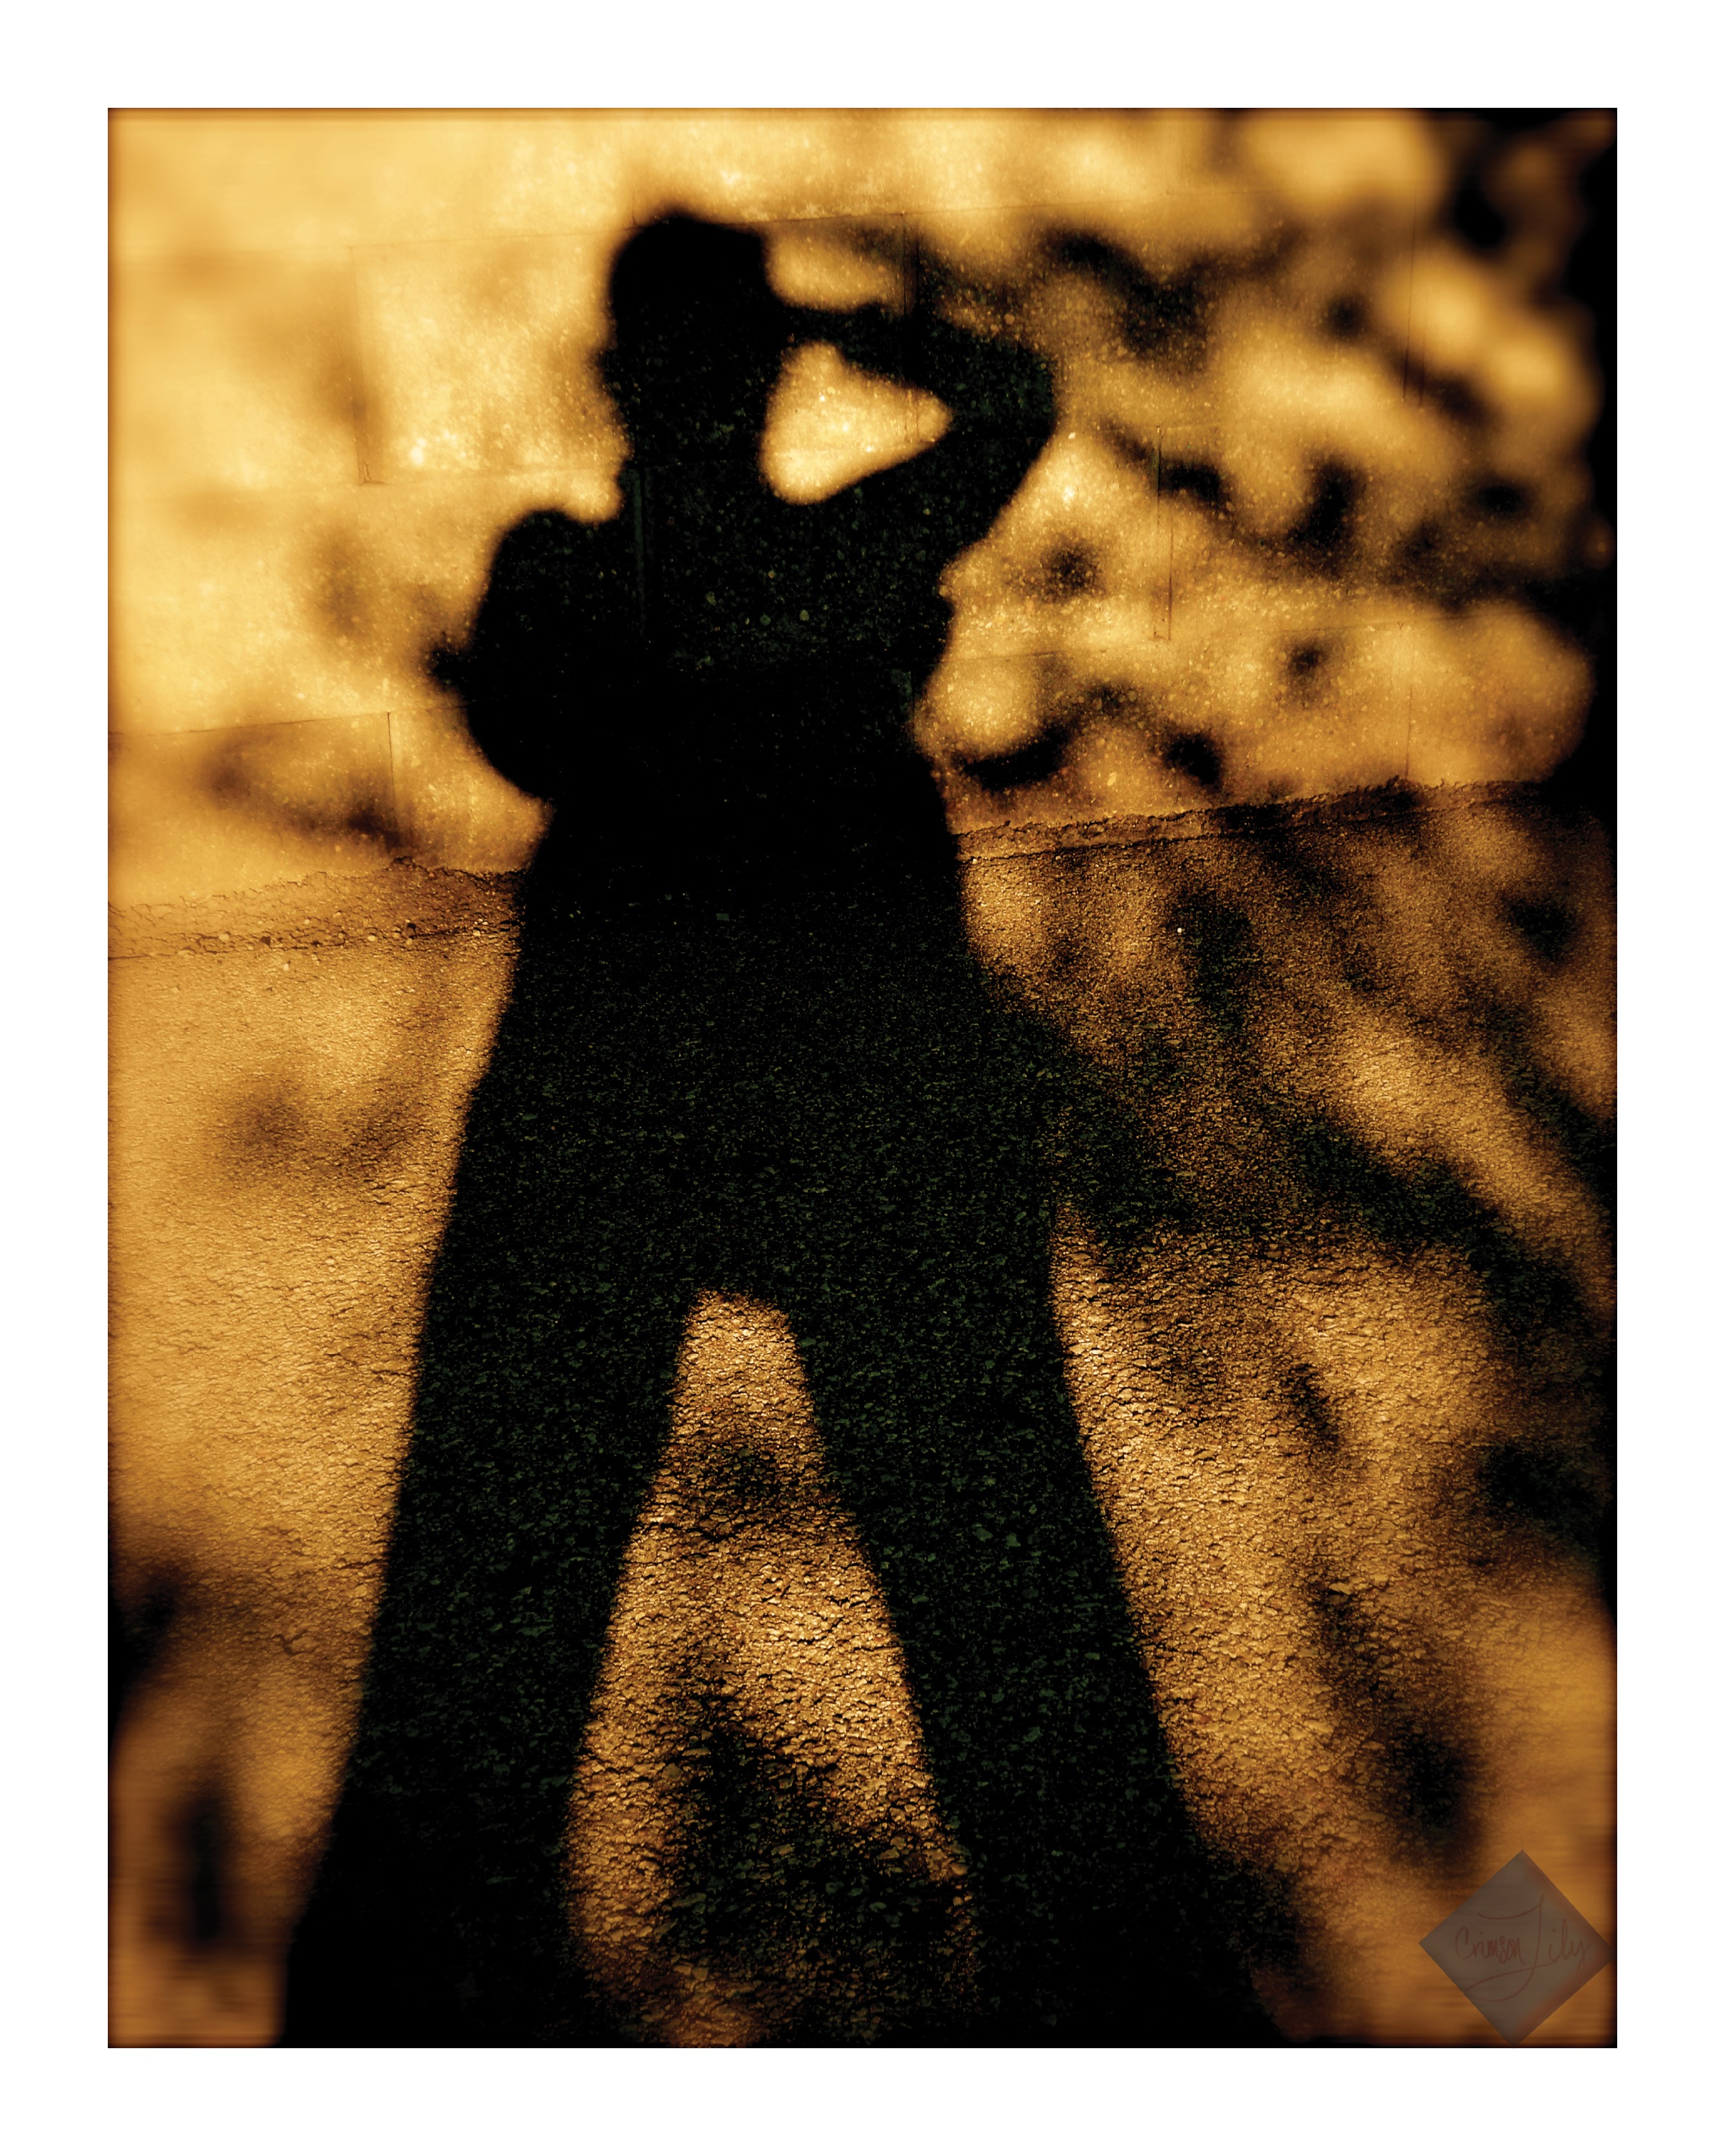 Shadow of Myself